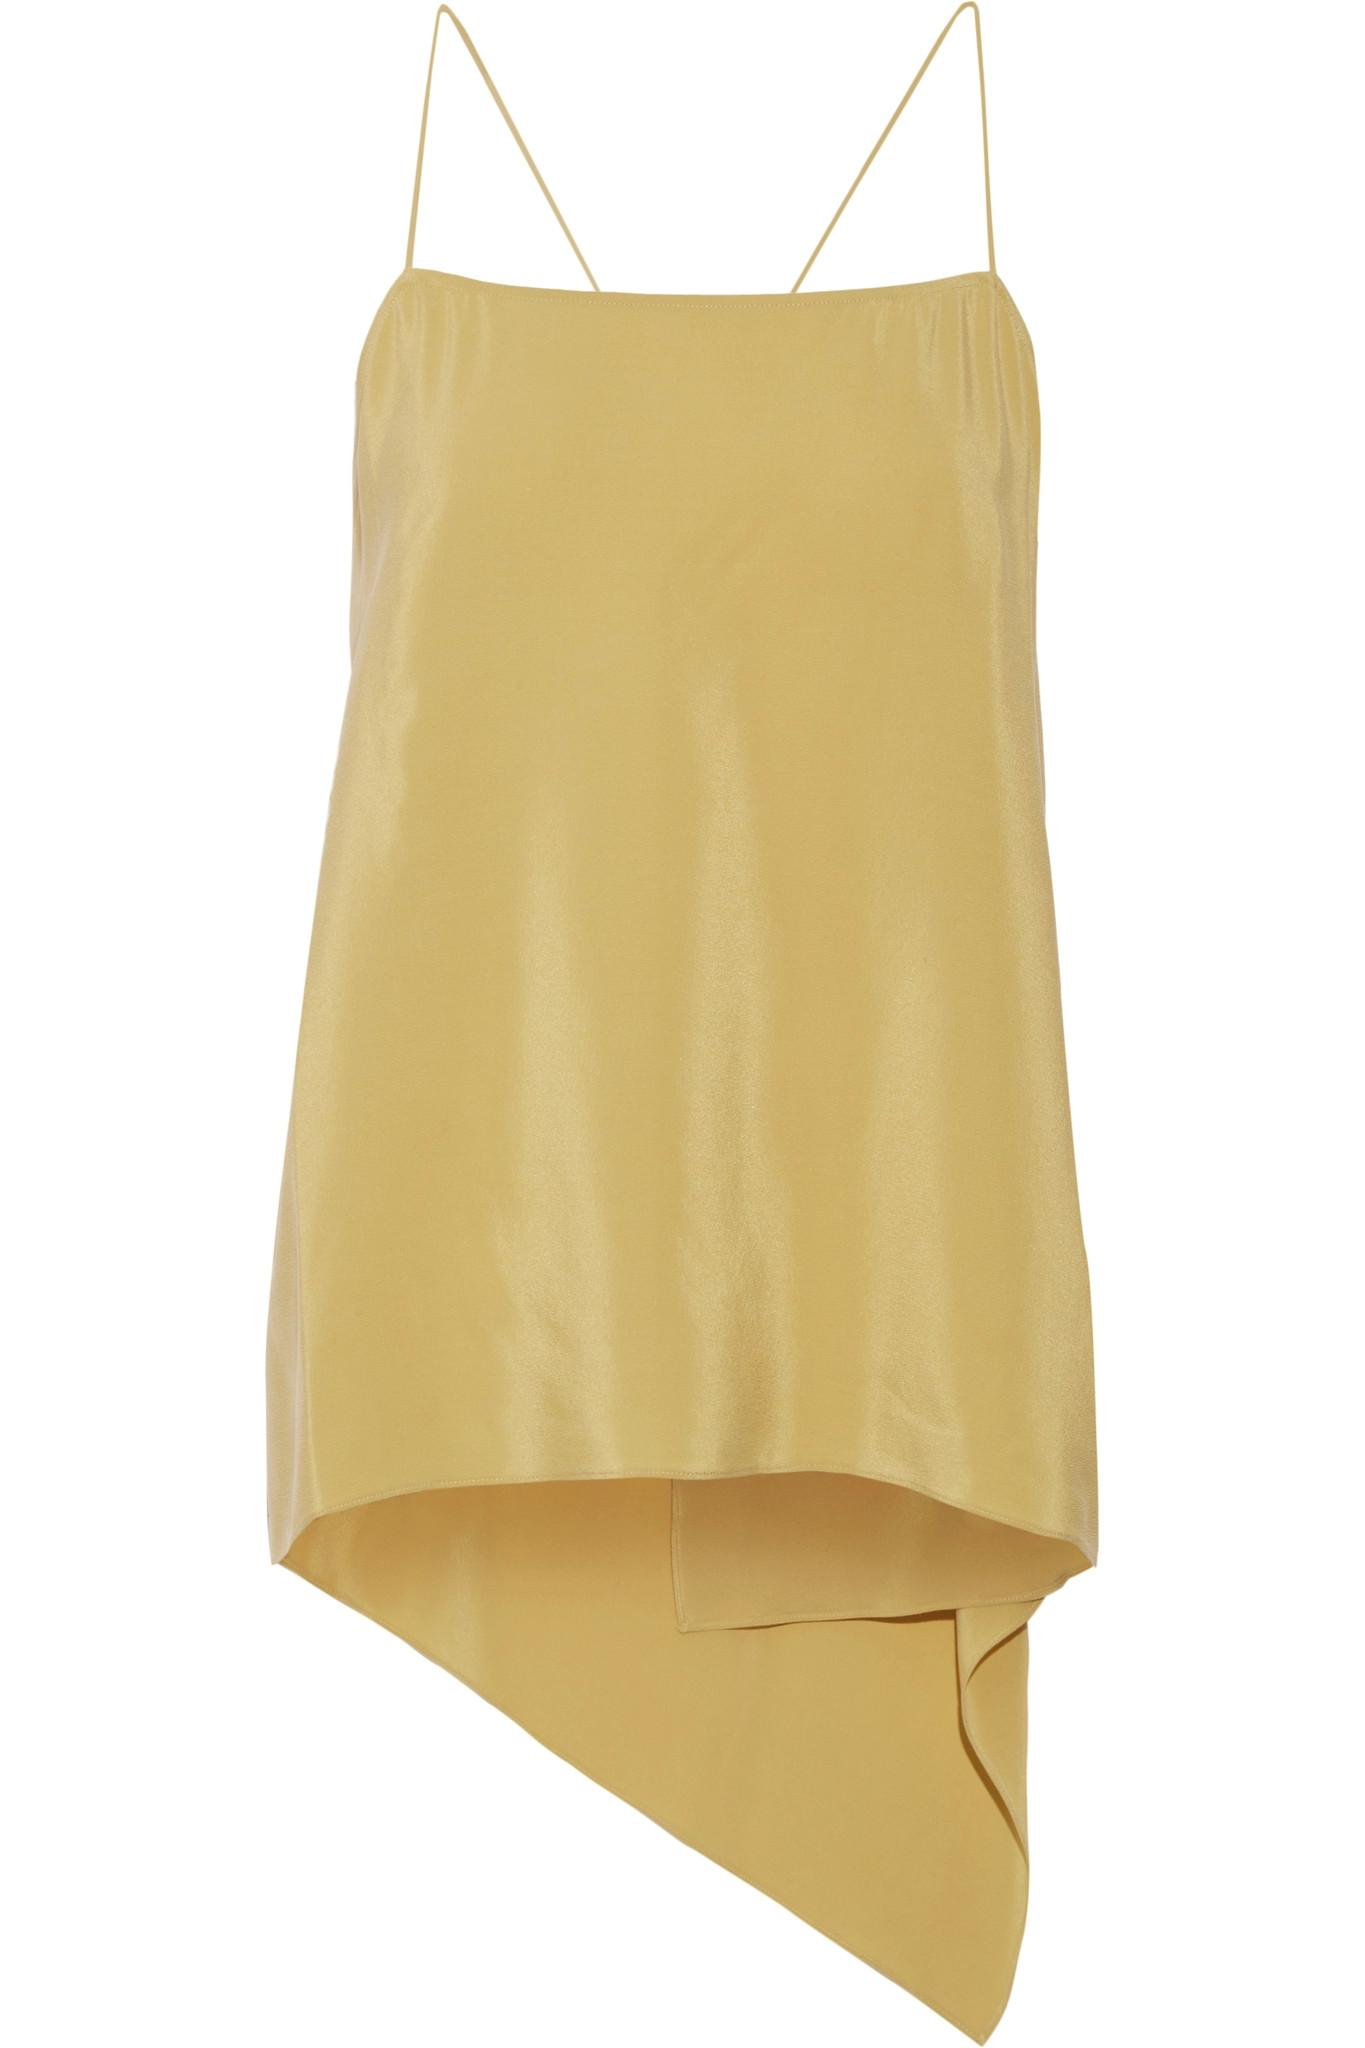 Theory Woman Asymmetric Draped Washed-silk Camisole Yellow Size L Theory Buy Cheap How Much Fake Sale Online Reliable Cheap Online Outlet Locations Cheap Price Wholesale Price Sale Online QIUjEaG0j